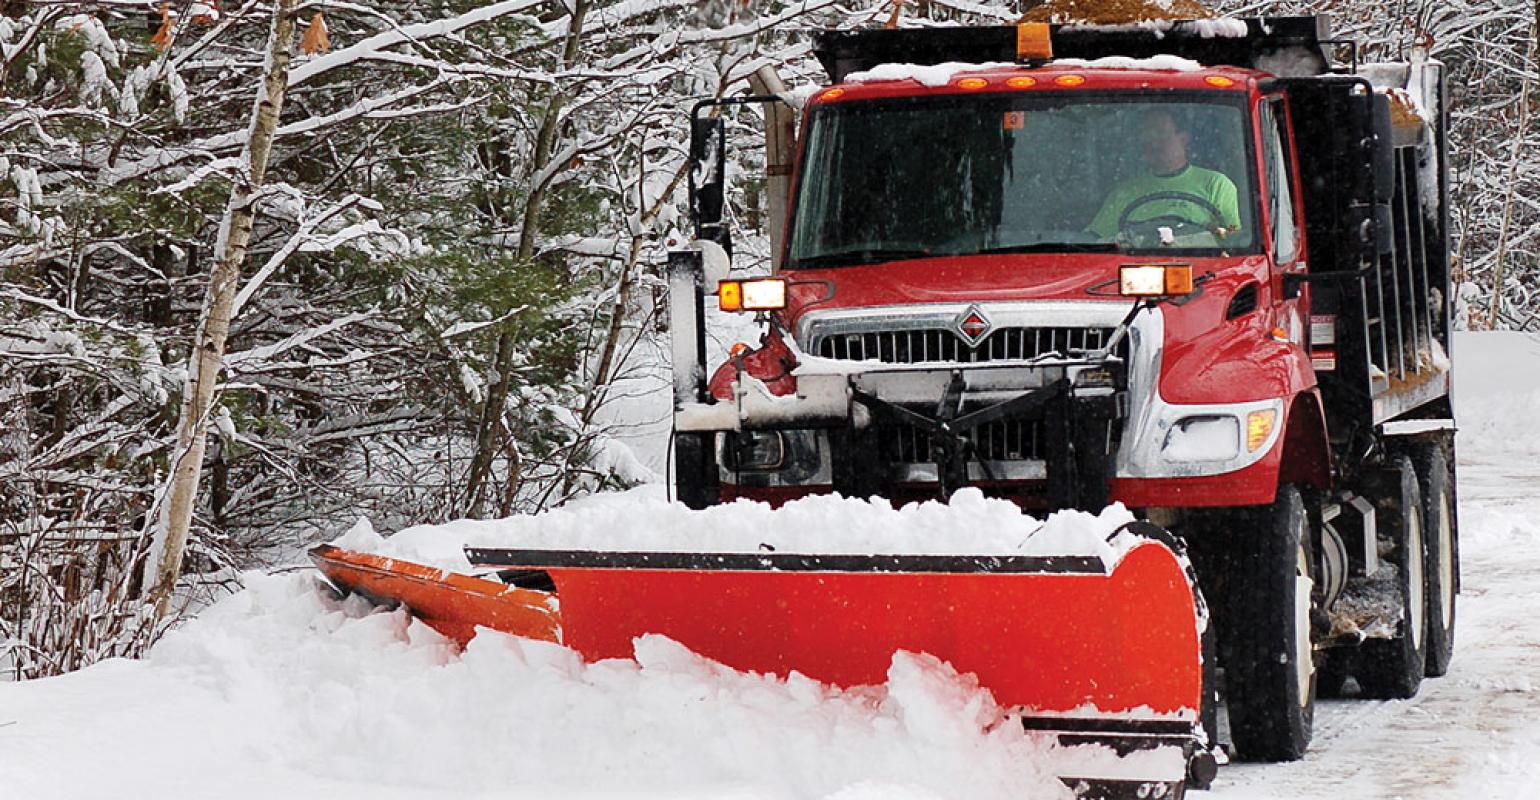 red snowplow